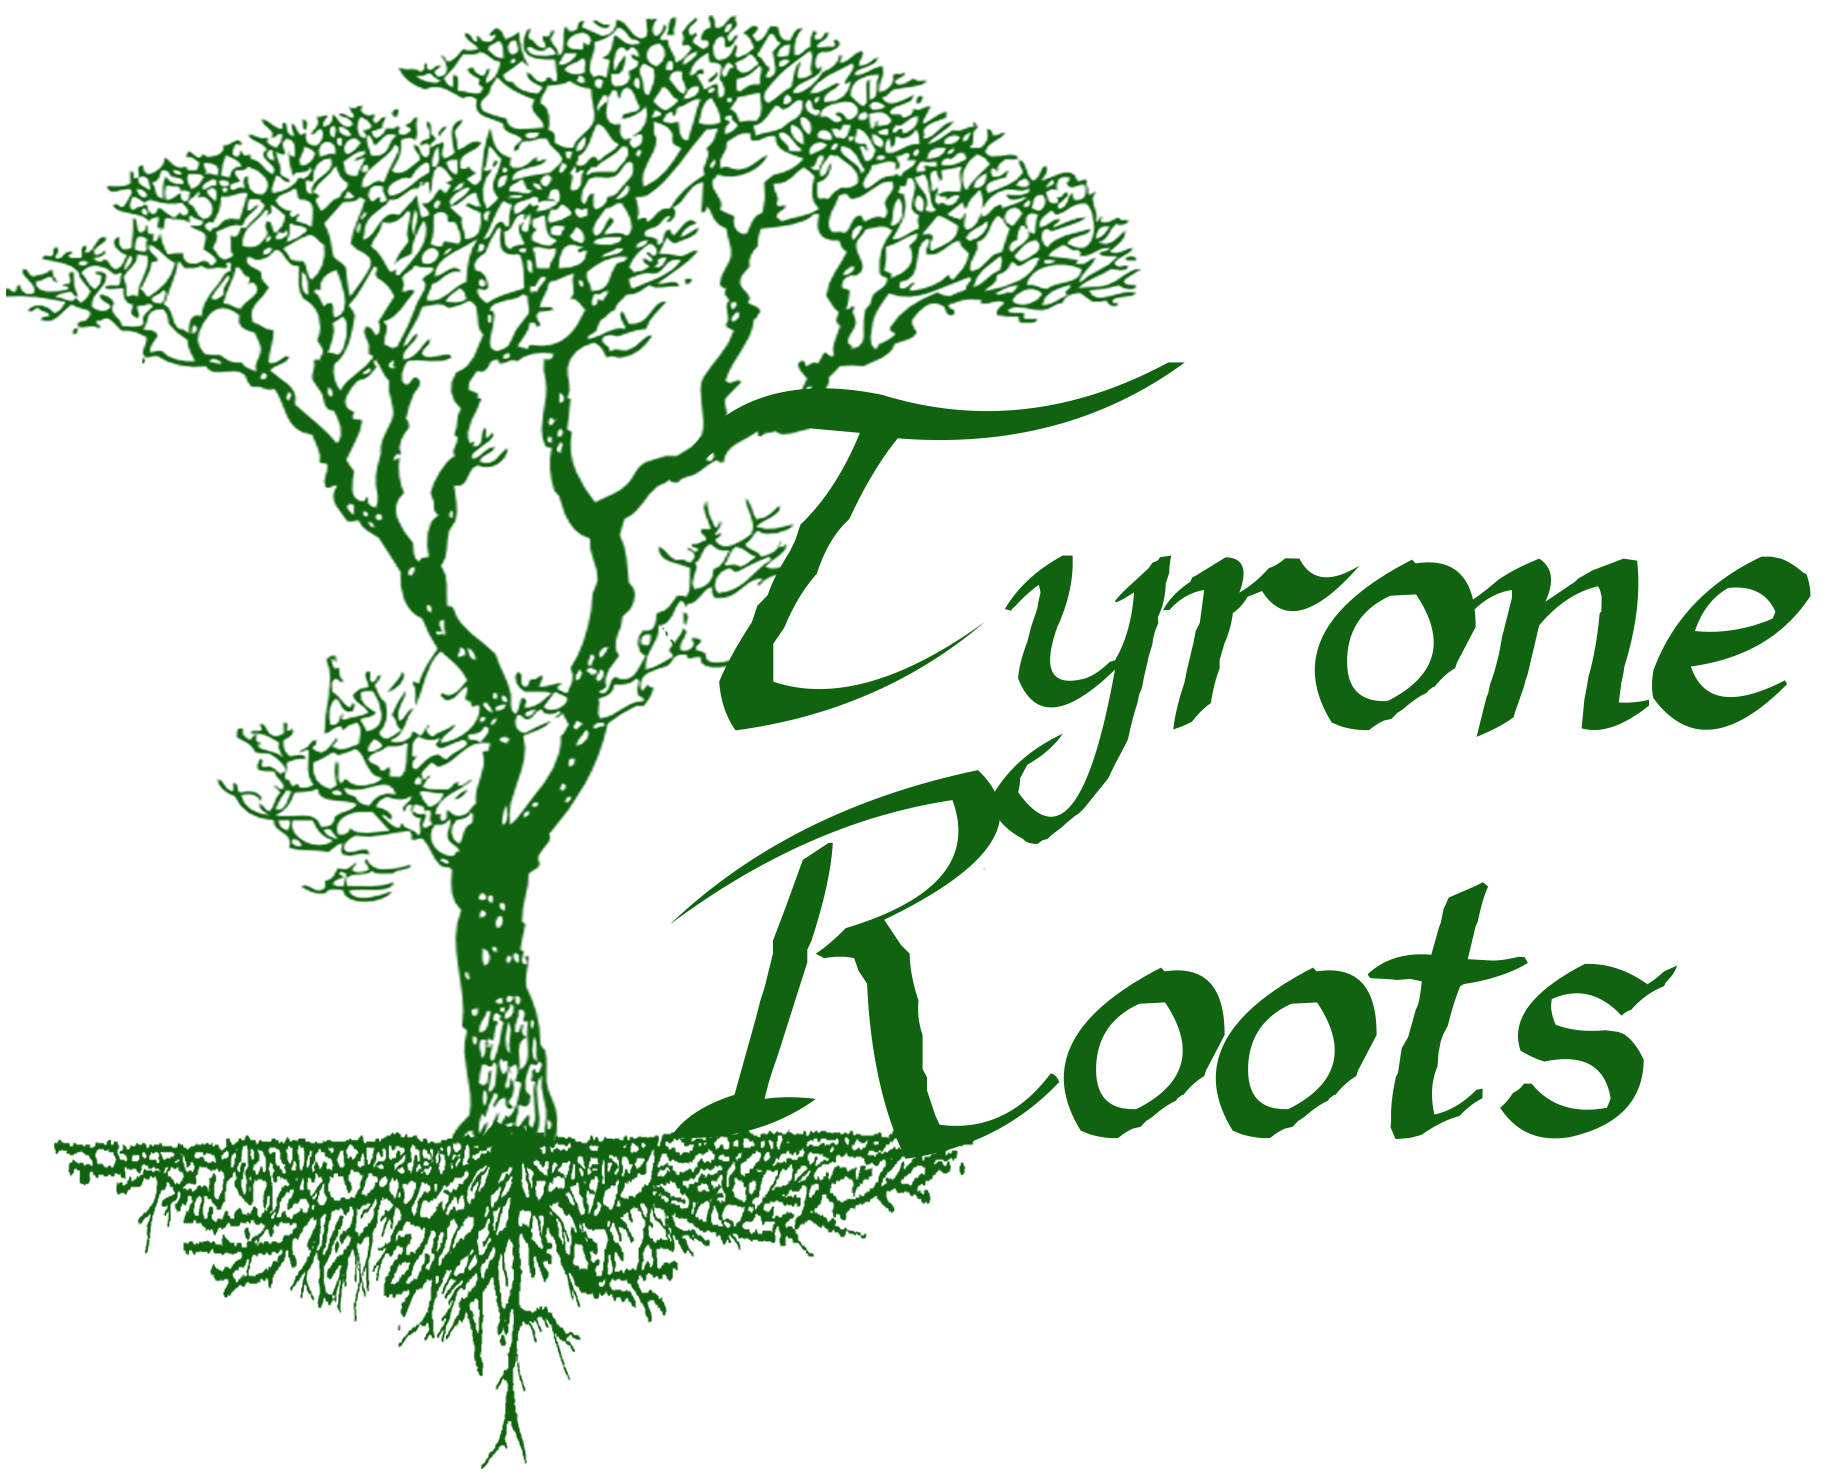 Tyrone Roots